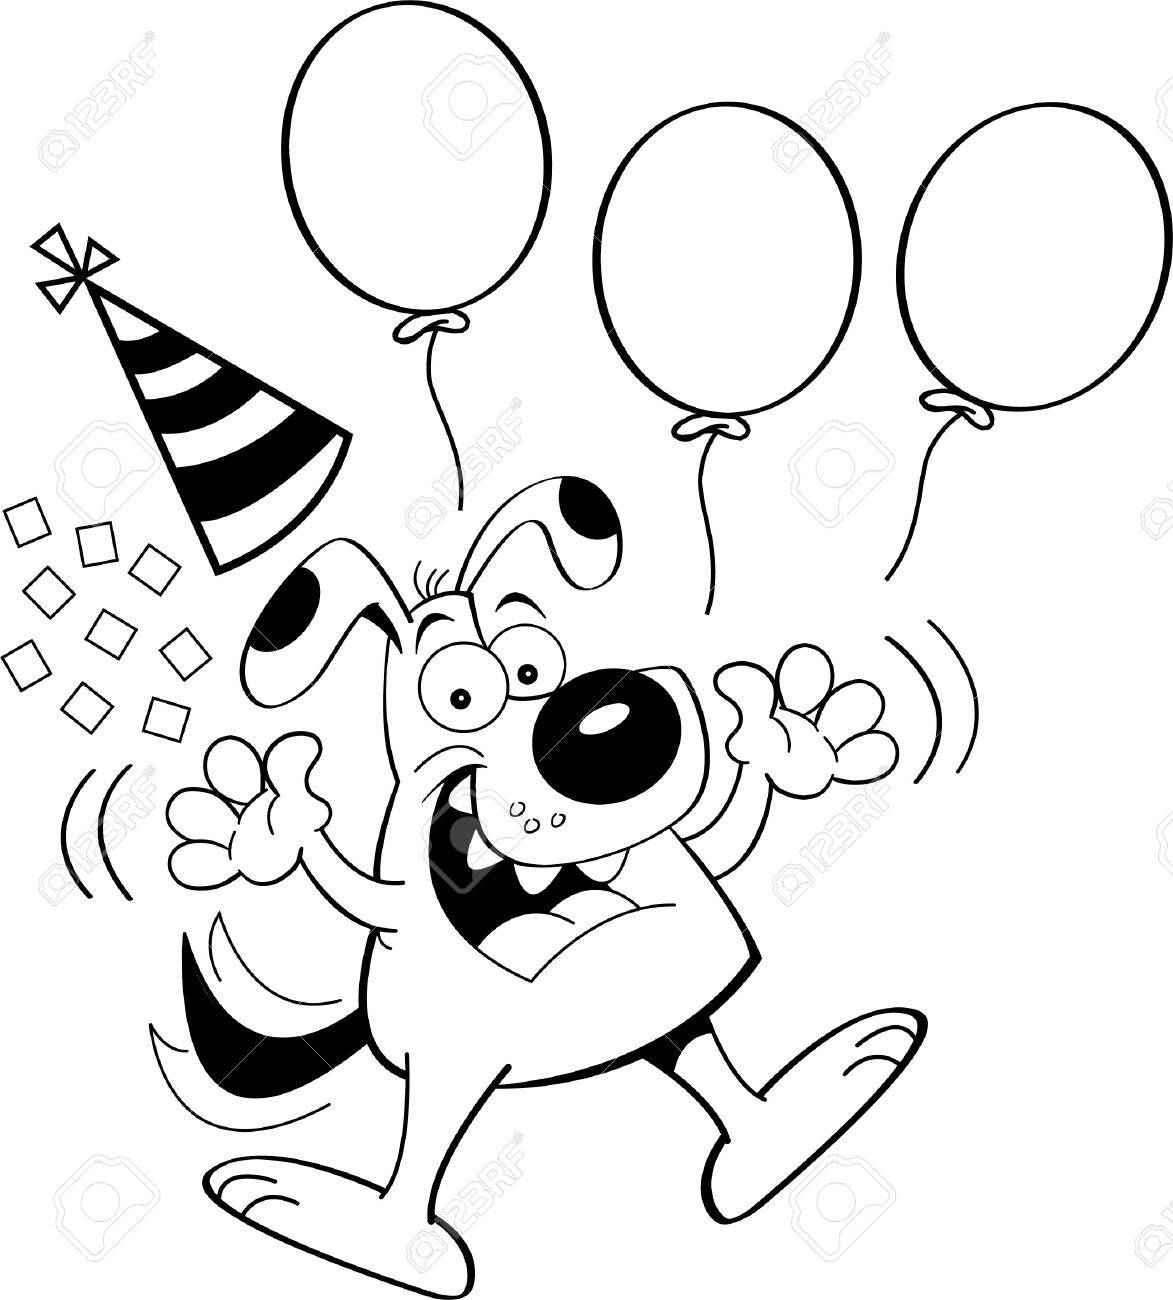 Black And White Illustration Of A Dog Jumping With Balloons And Royalty Free Cliparts Vectors And Stock Illustration Image 19254878